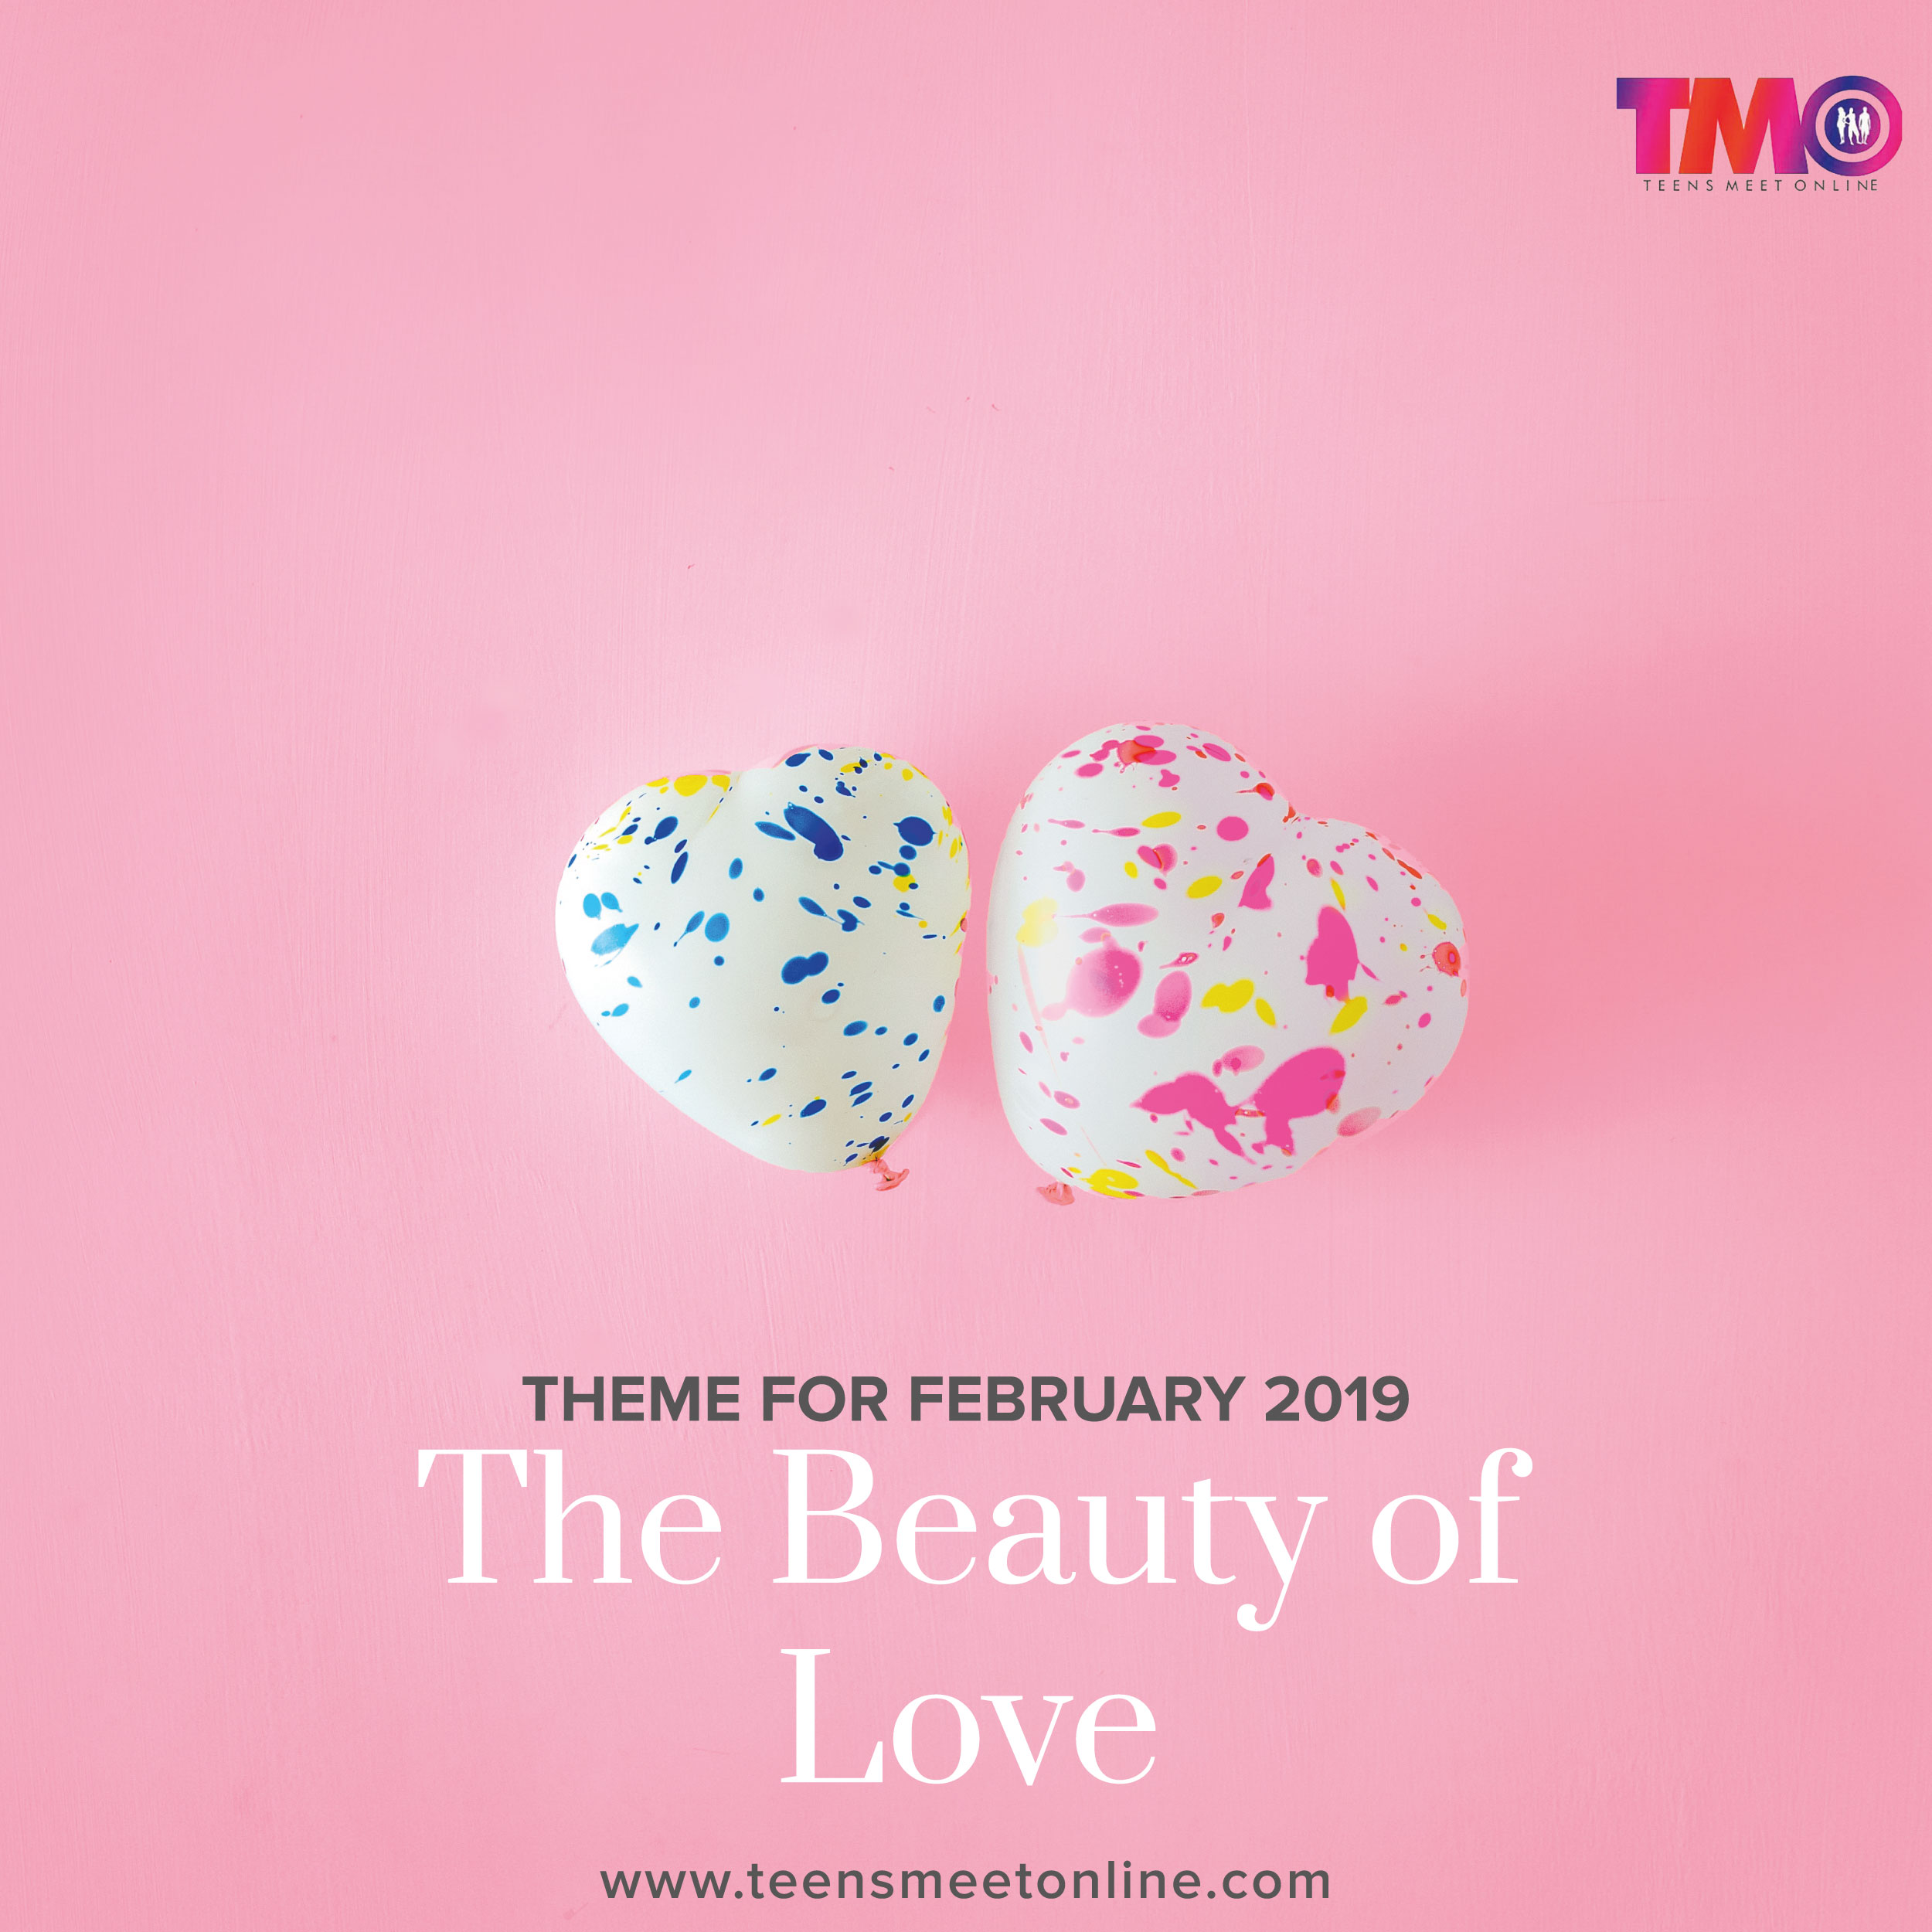 February 2019: The Beauty of Love